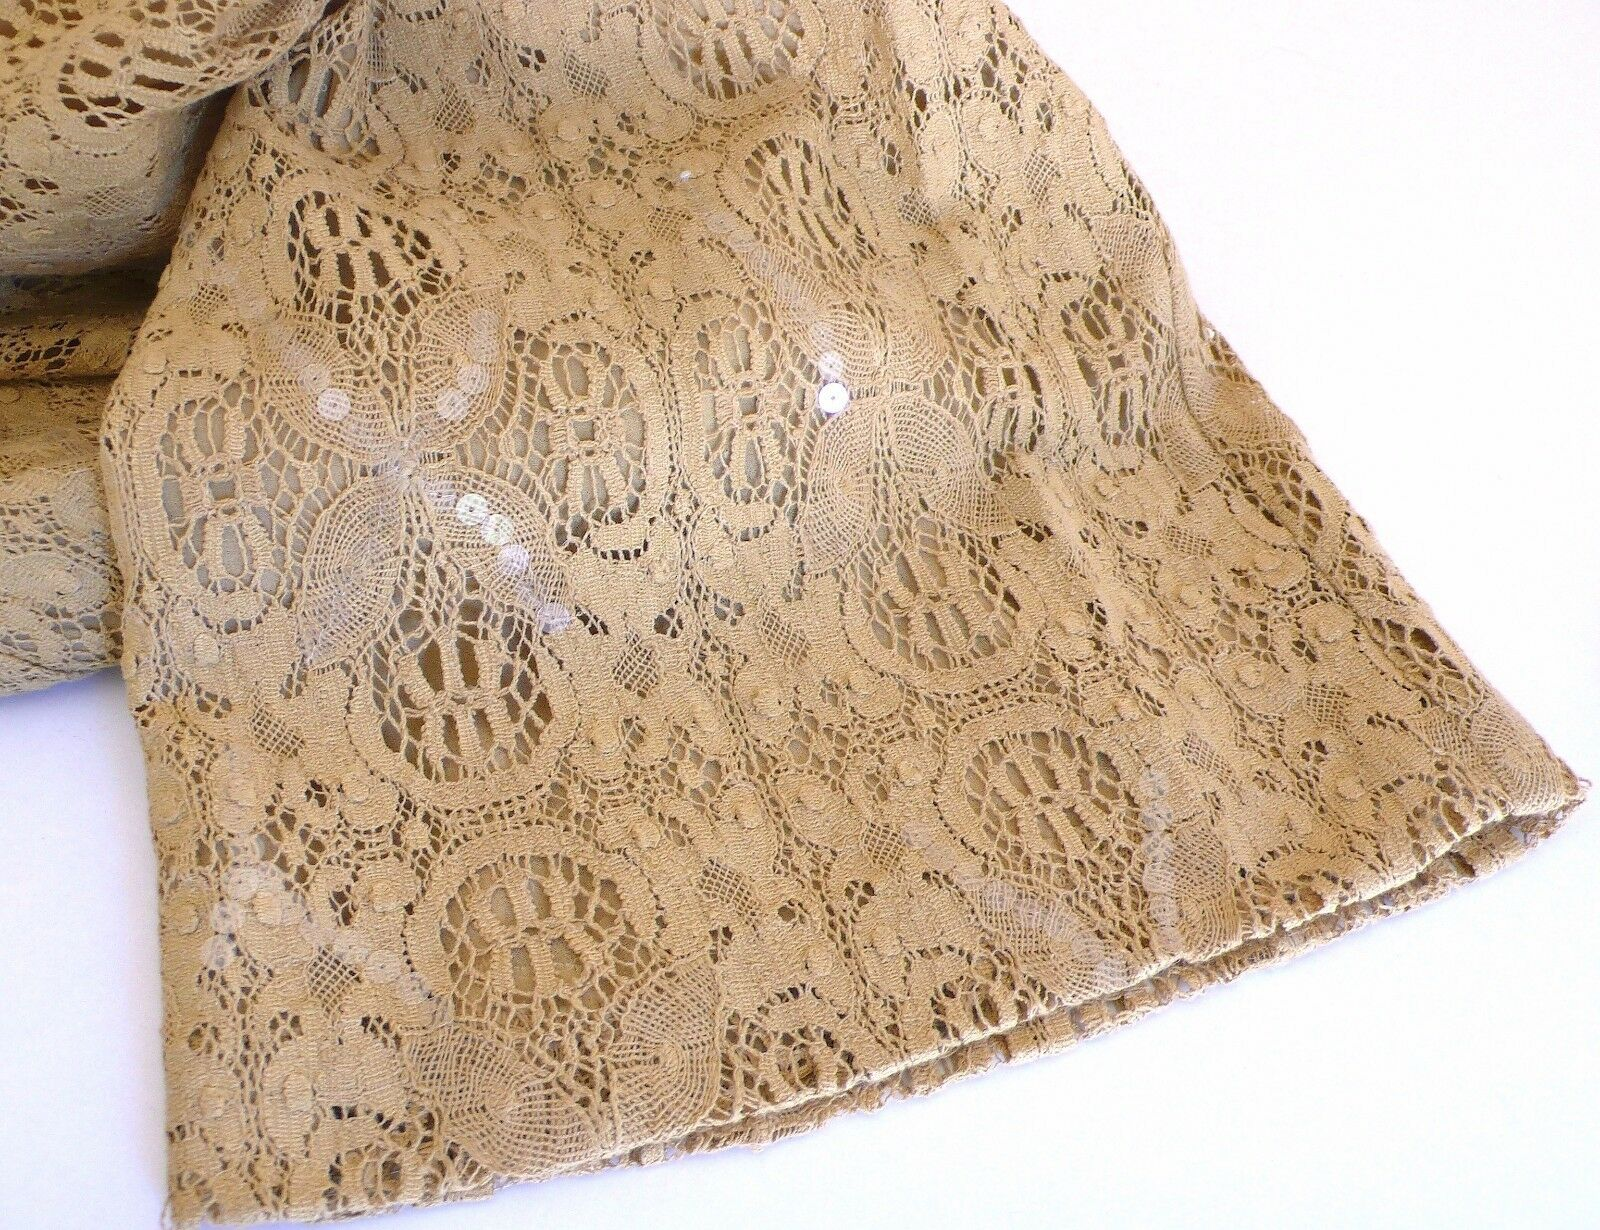 FAB  895 NWT GENNY Couture Caramel-Beige Sequined Cotton Lace Pants 48 ITALY